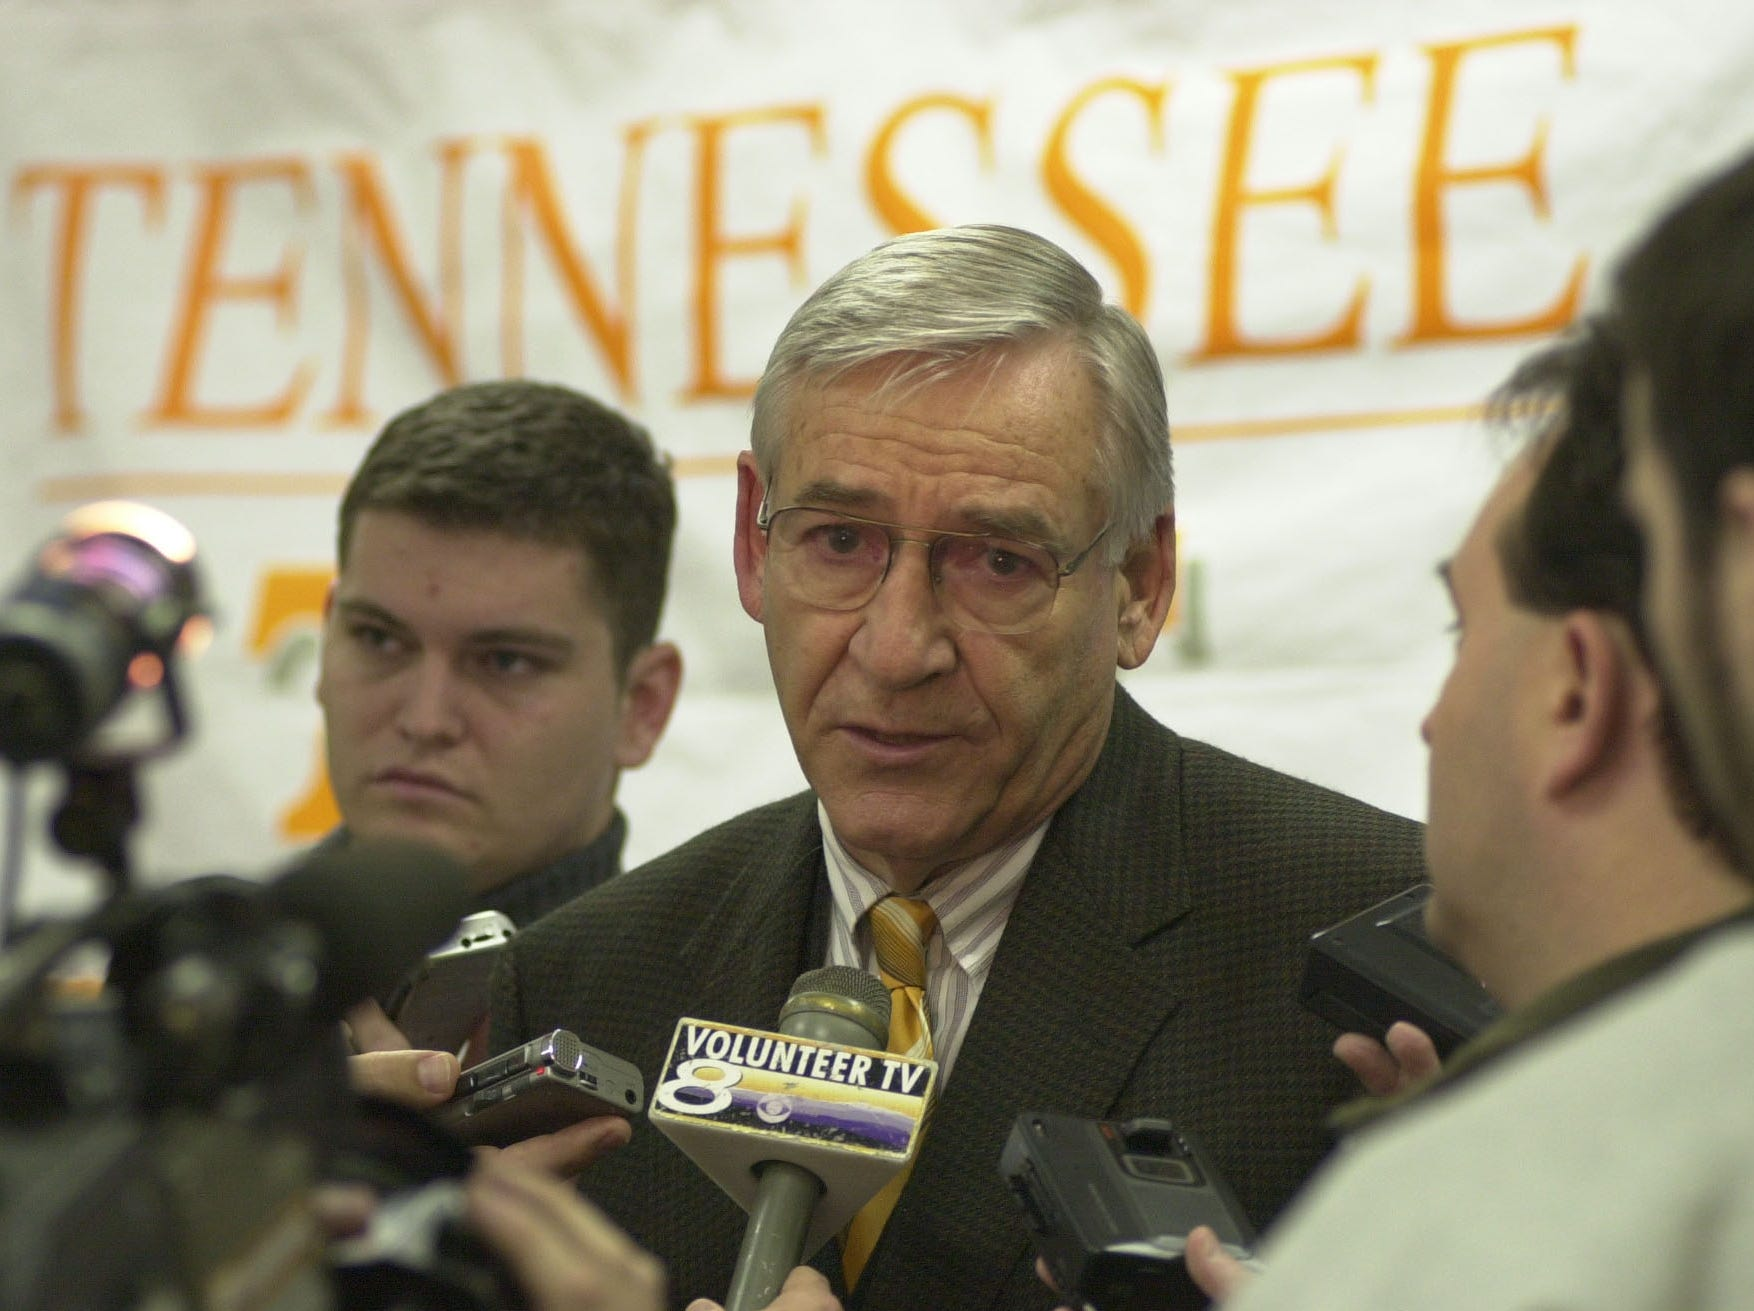 Doug Dickey, University of Tennessee director of athletics, fields questions from reporters on Tuesday after he announced that head men's basketball coach, Jerry Green, resigned. Green's record was 89-36 in four season at Tennessee.